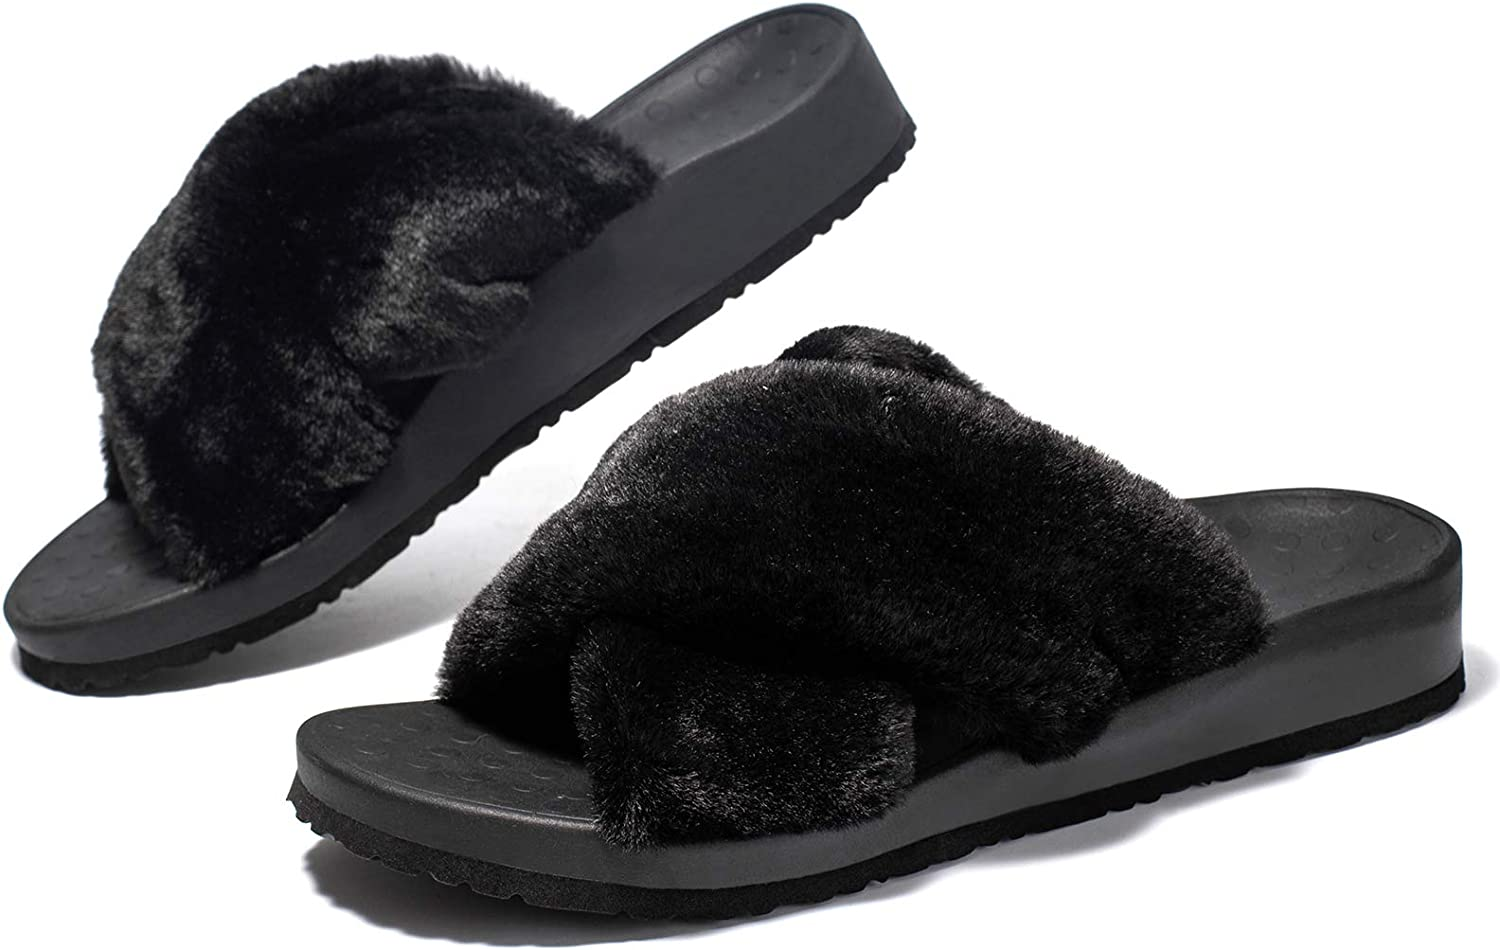 Womens Plantar Popular product Fasciitis Slippers trend rank with Fuzzy Fluf Open Cross Toe